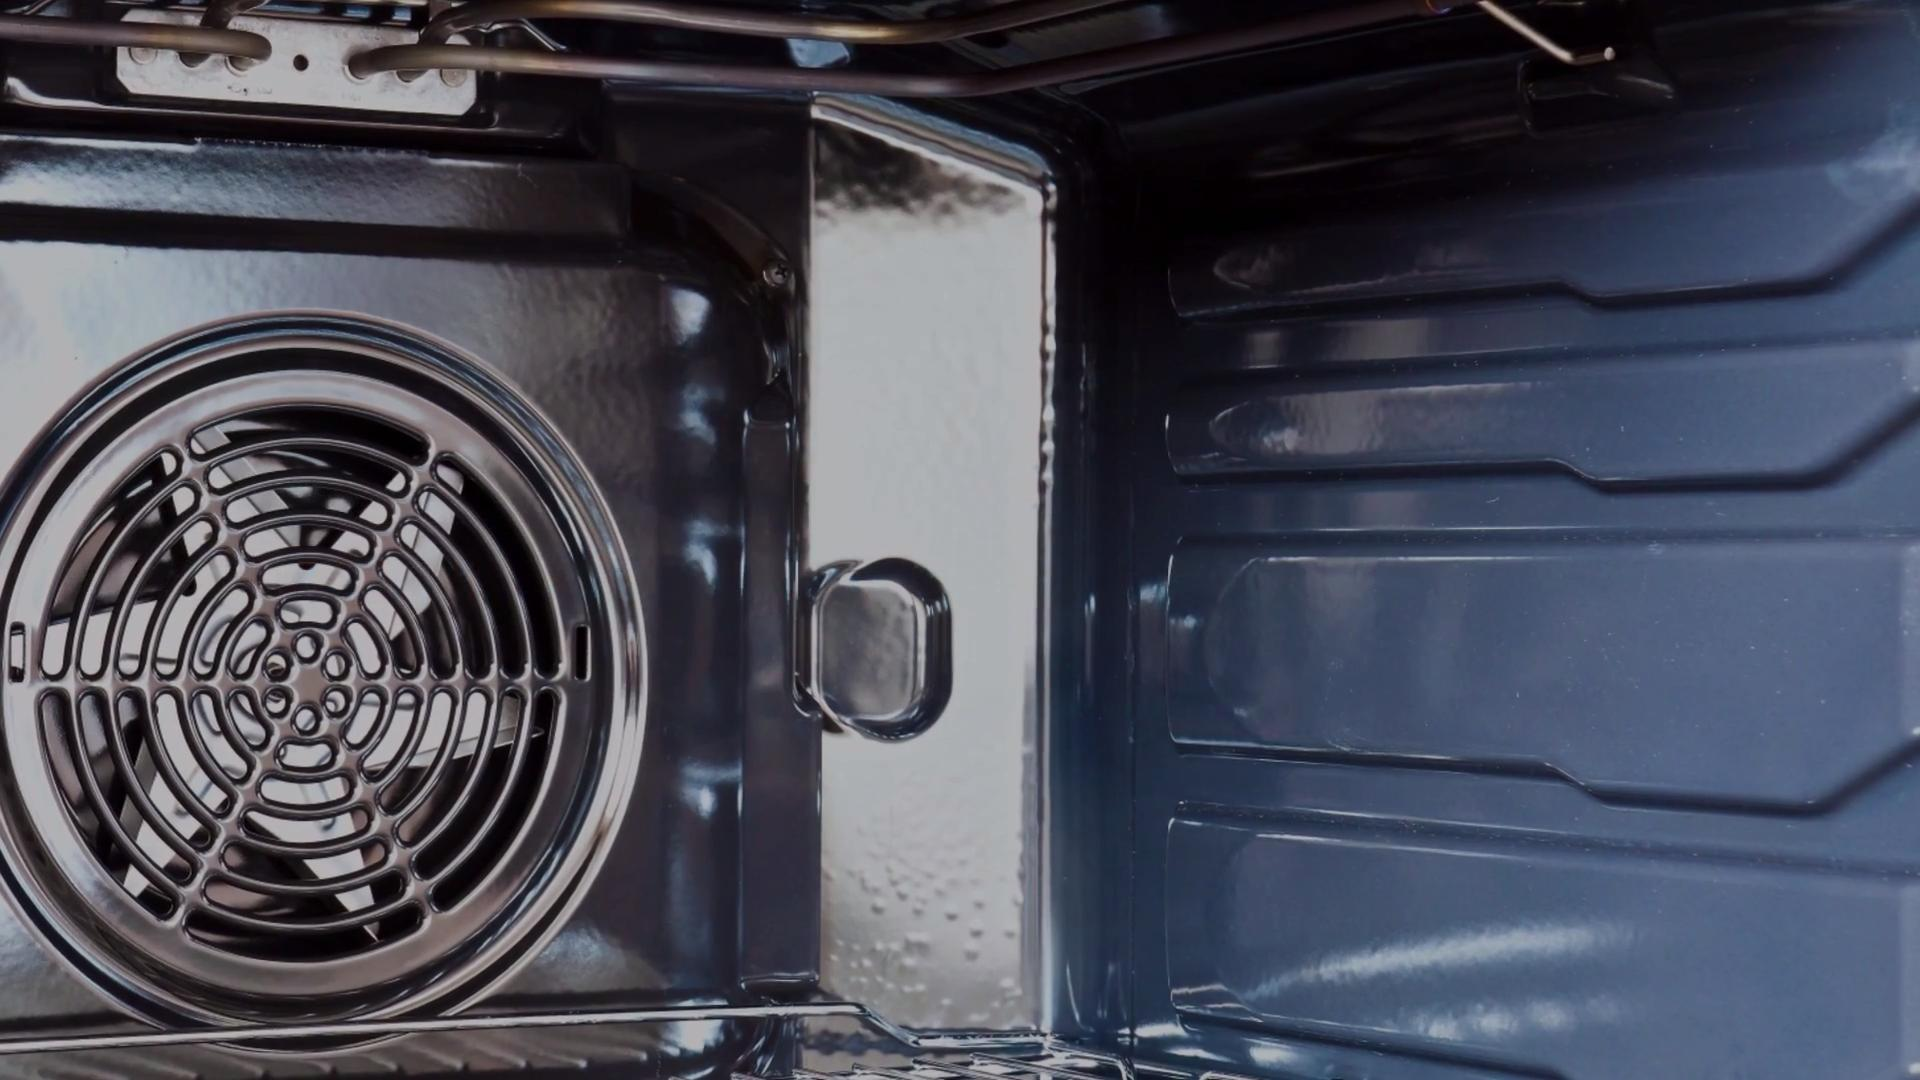 What Is a Convection Oven—and What Should You Cook In It?